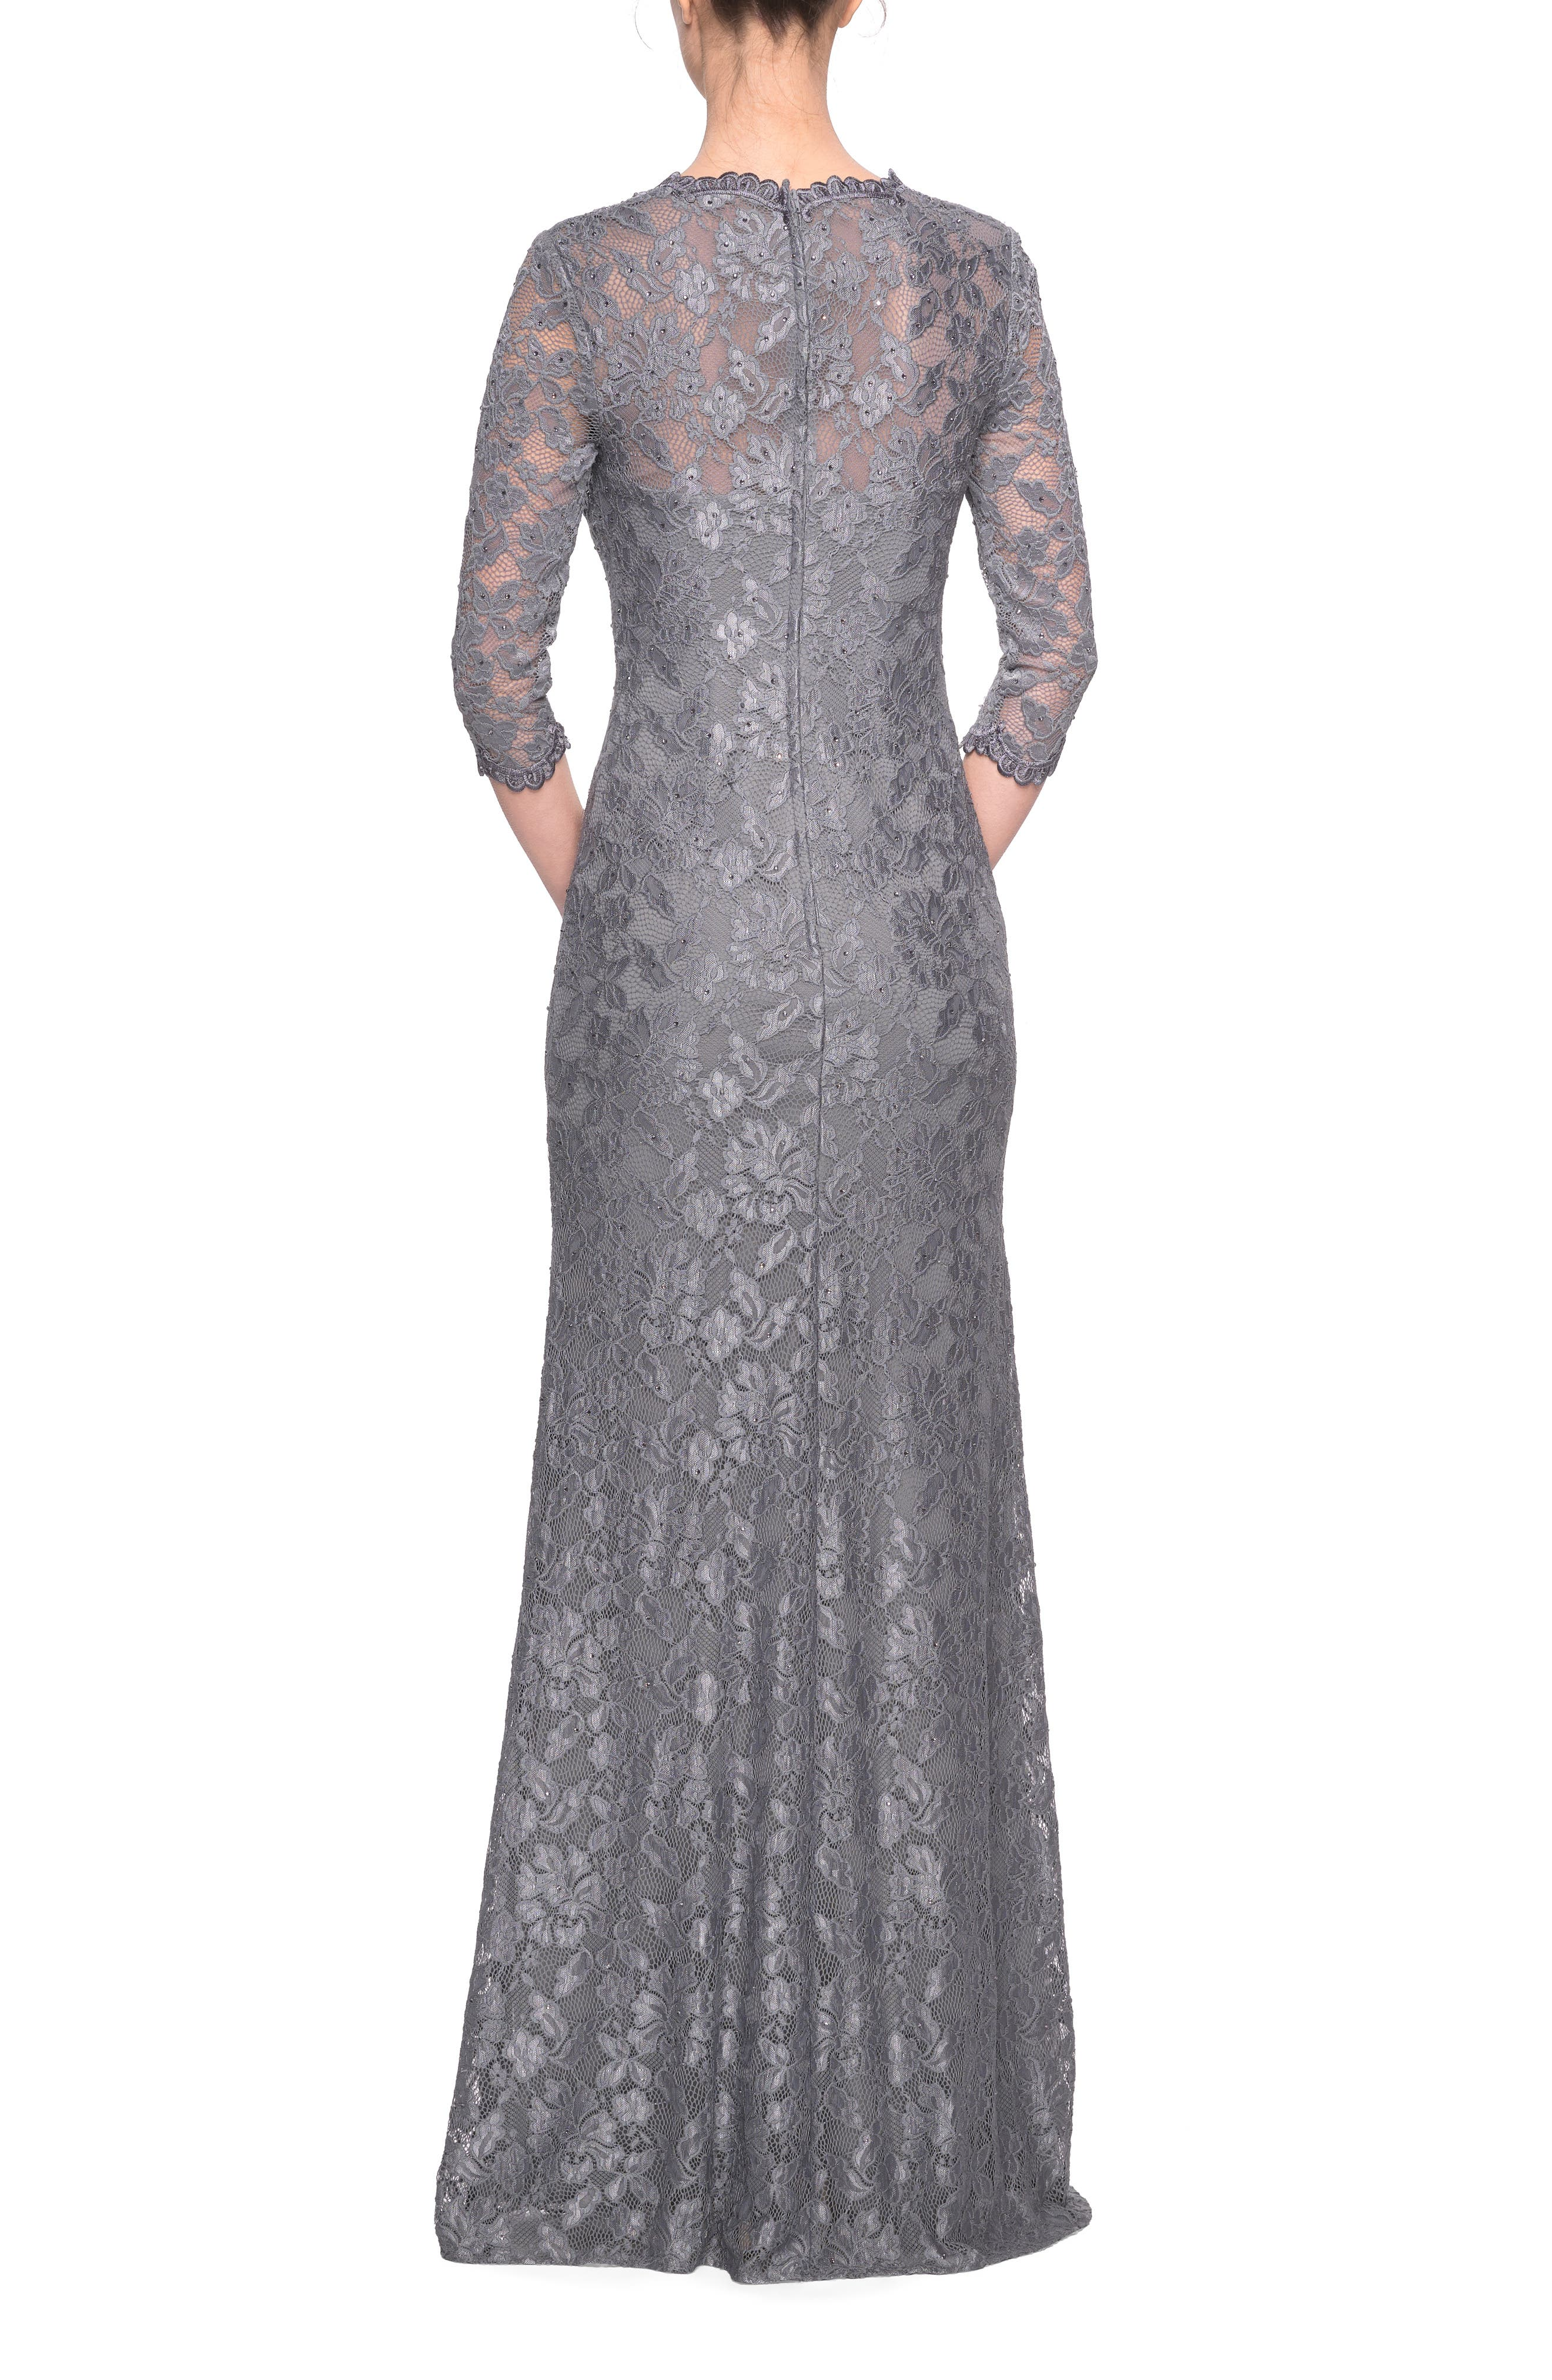 LA FEMME,                             Lace Column Gown,                             Alternate thumbnail 2, color,                             PLATINUM